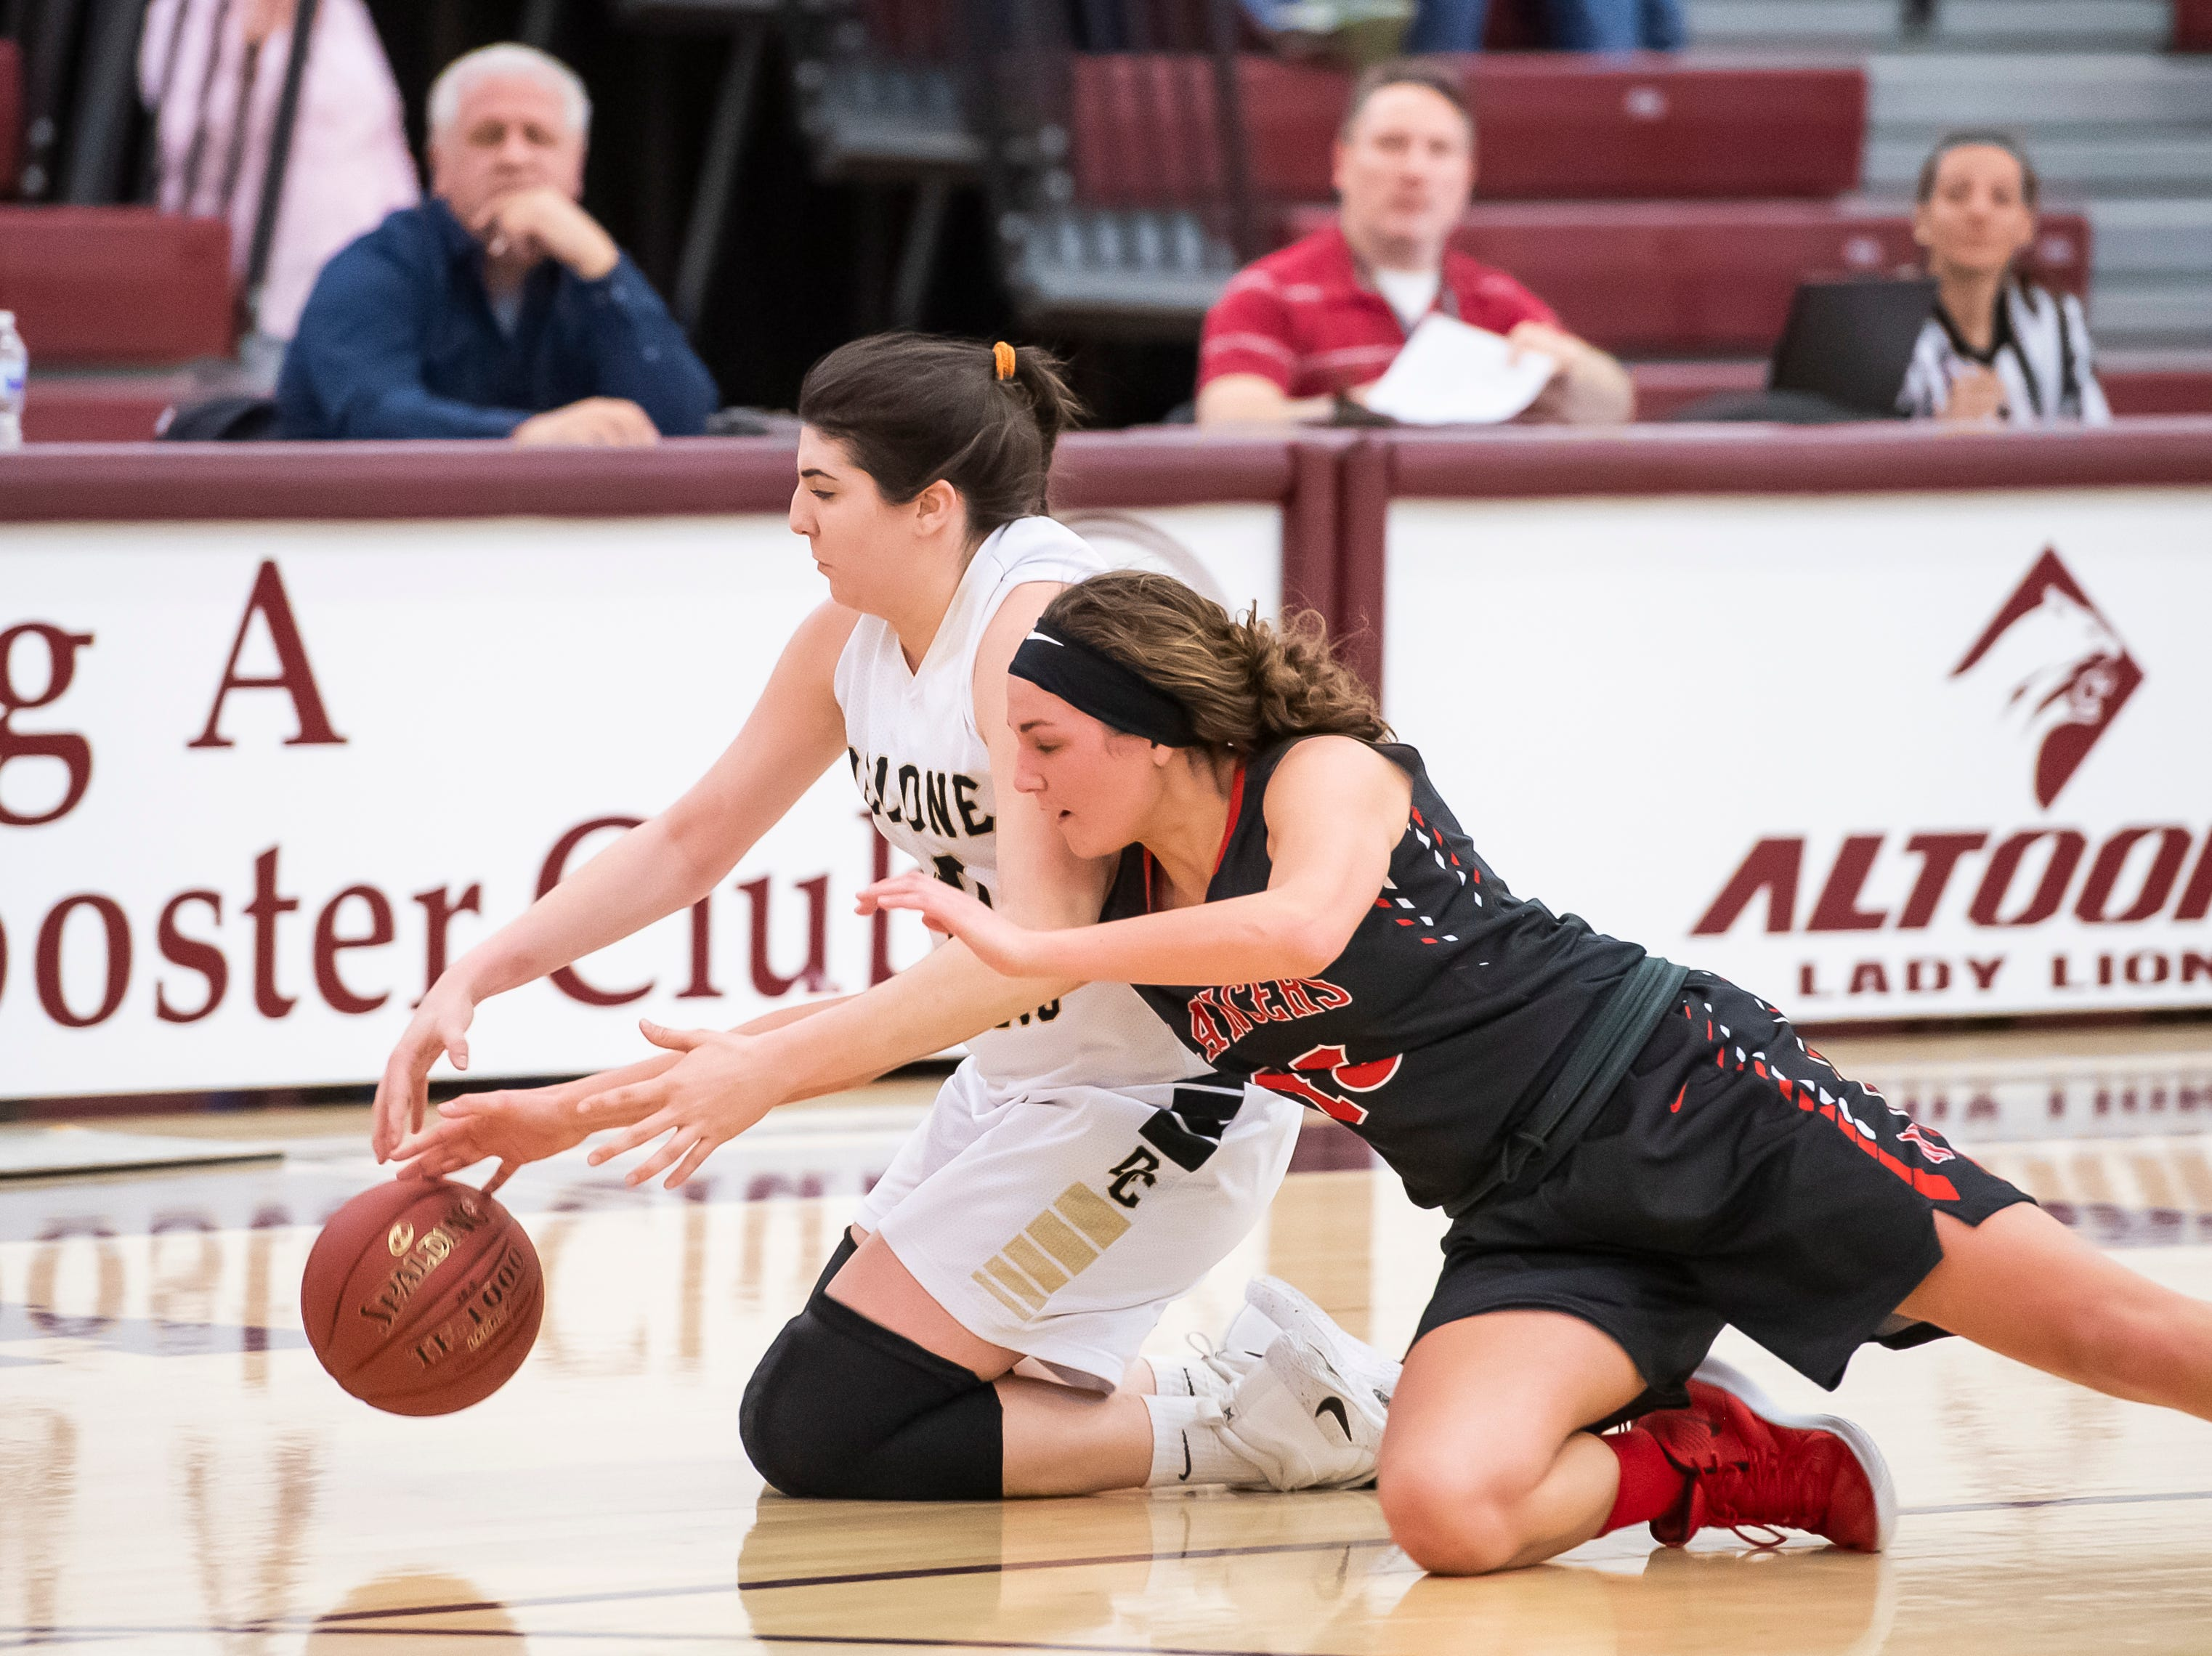 Delone Catholic's Bradi Zumbrum maintains possession as Neshannock's Isabella Burrelli tries to make a steal during a PIAA 3A quarterfinal in Altoona, Pa., on Friday, March 15, 2019. The Squirettes won 50-41.